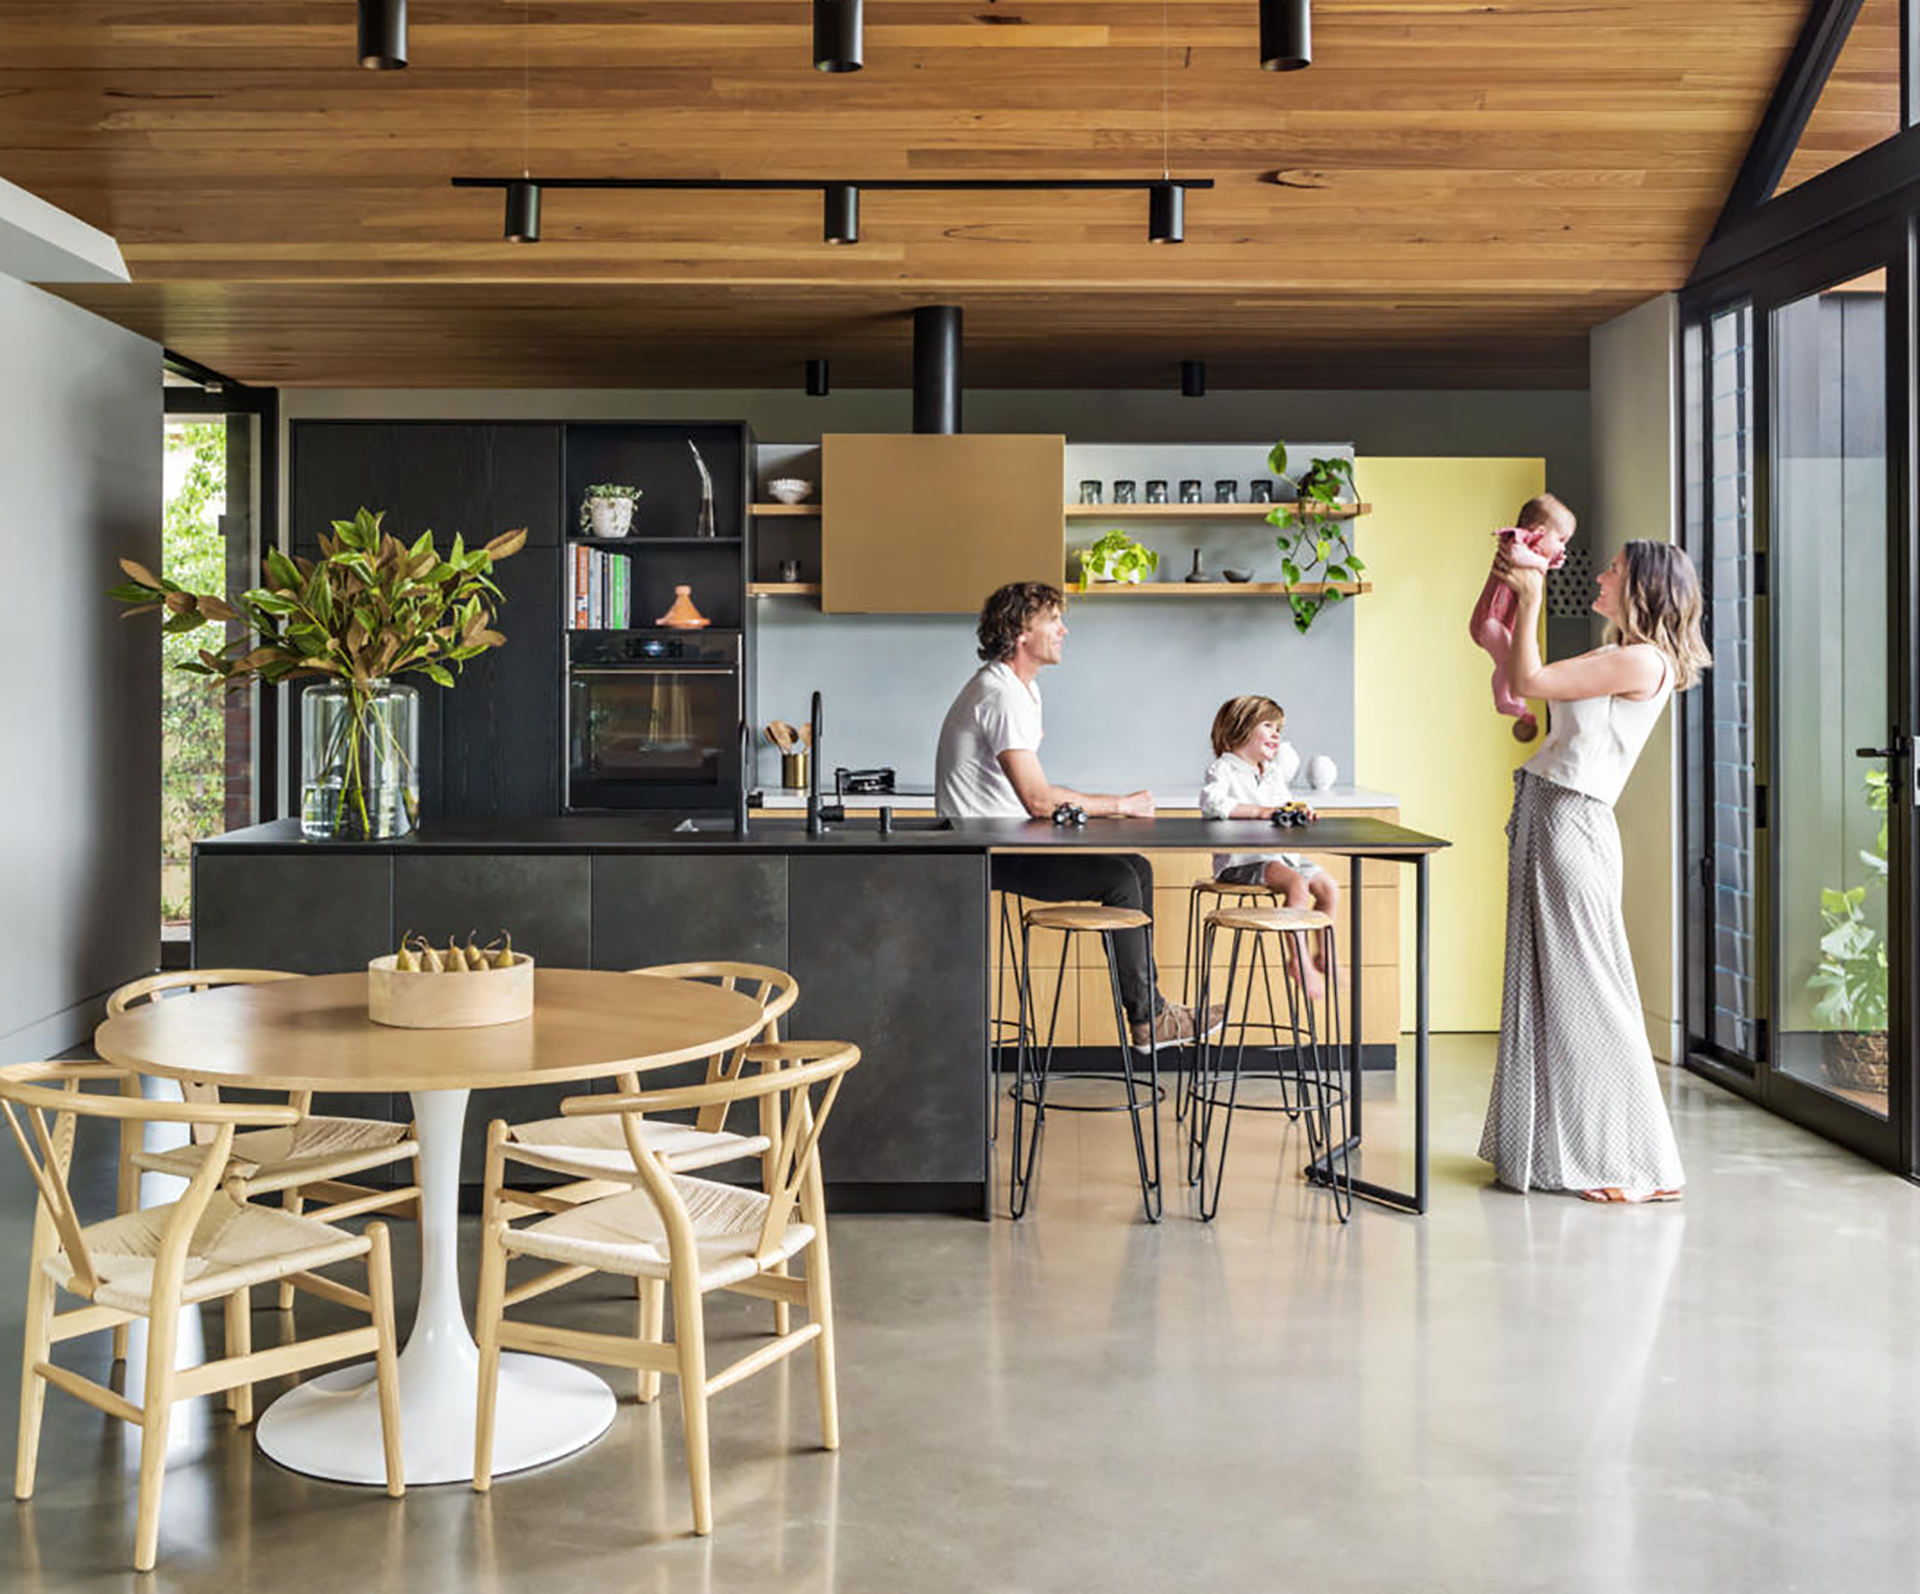 Adelaide home renovation planned around an old oak tree